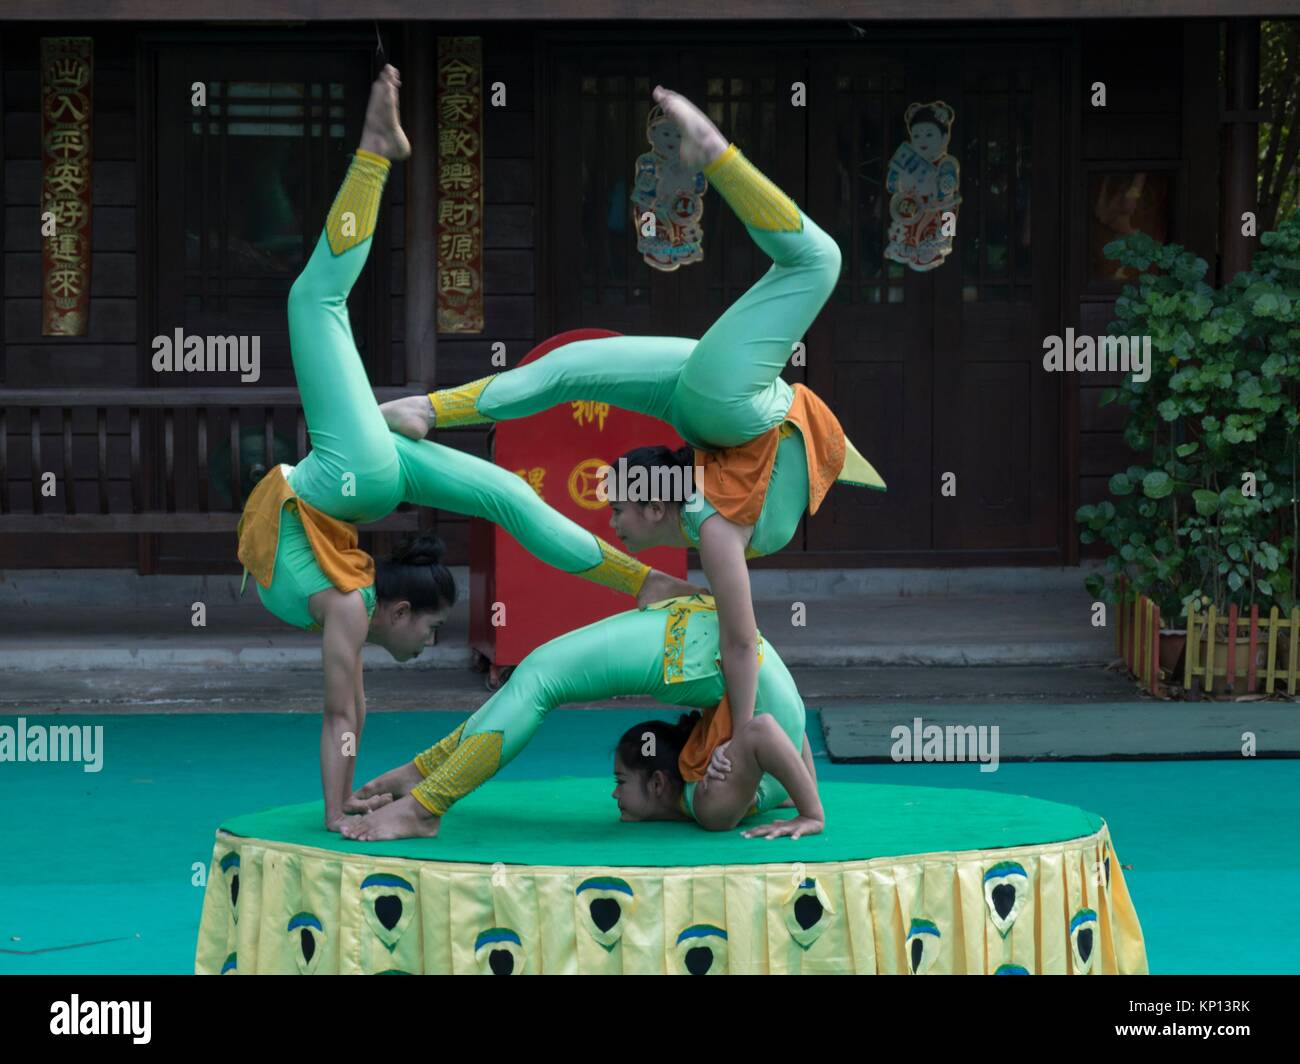 Cambodian circus troupe performing at Siem Reap theatre. - Stock Image